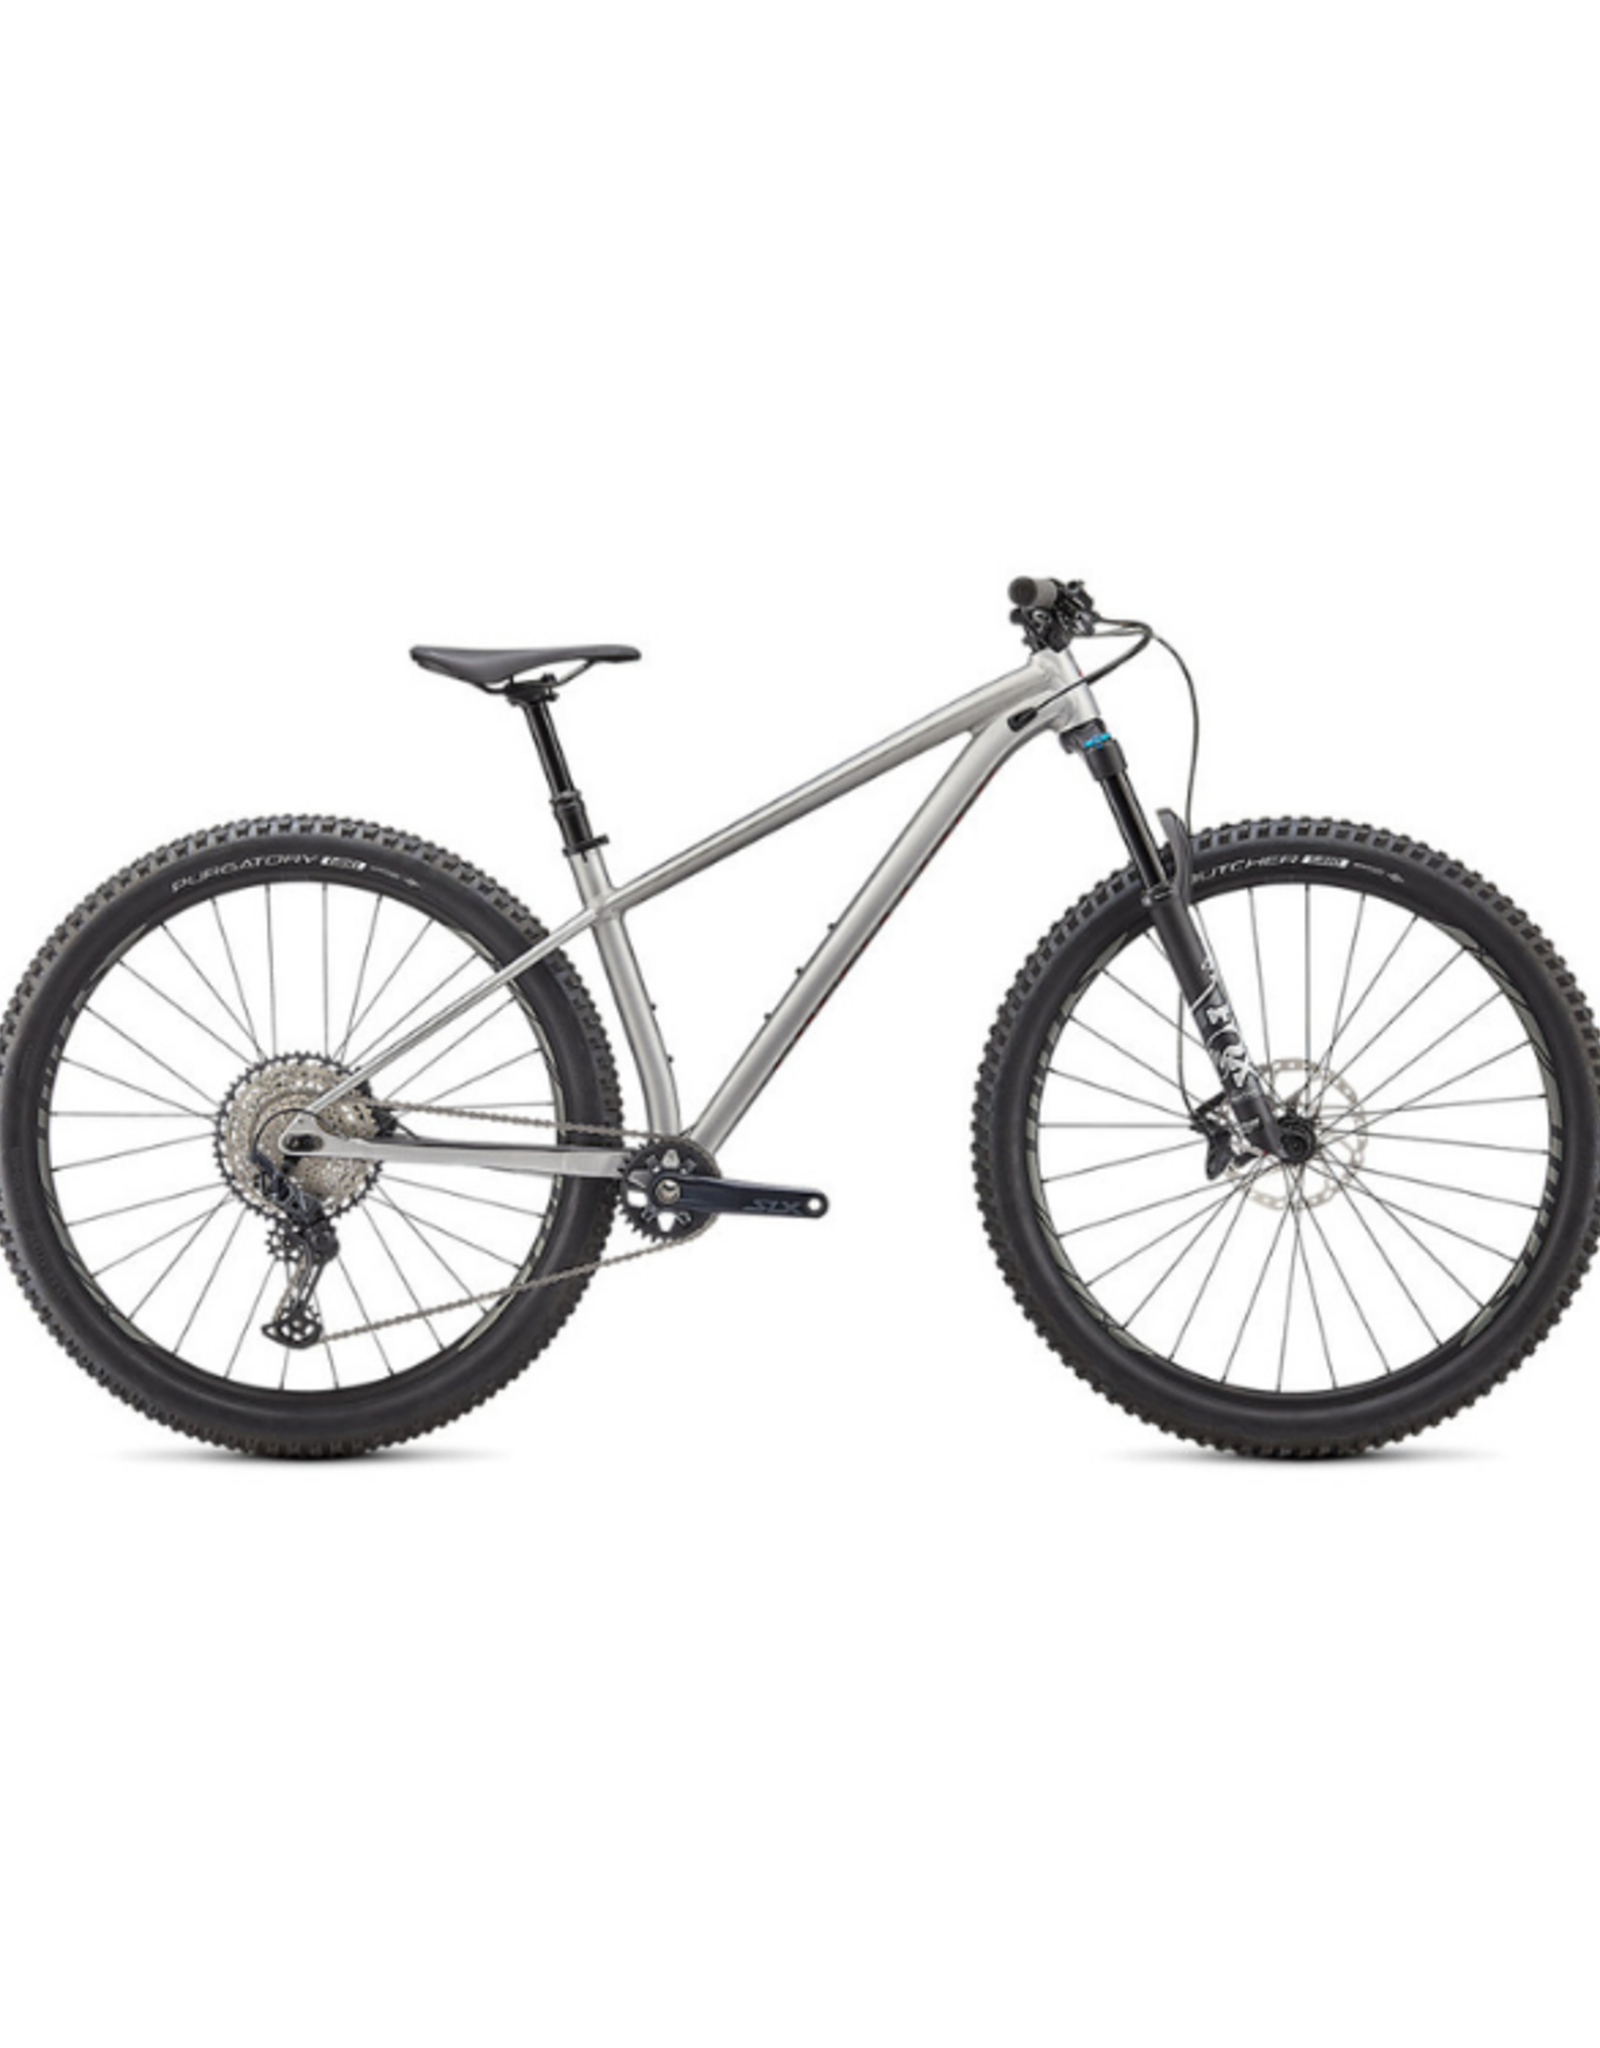 Specialized Specialized 2021 Fuse Expert 29